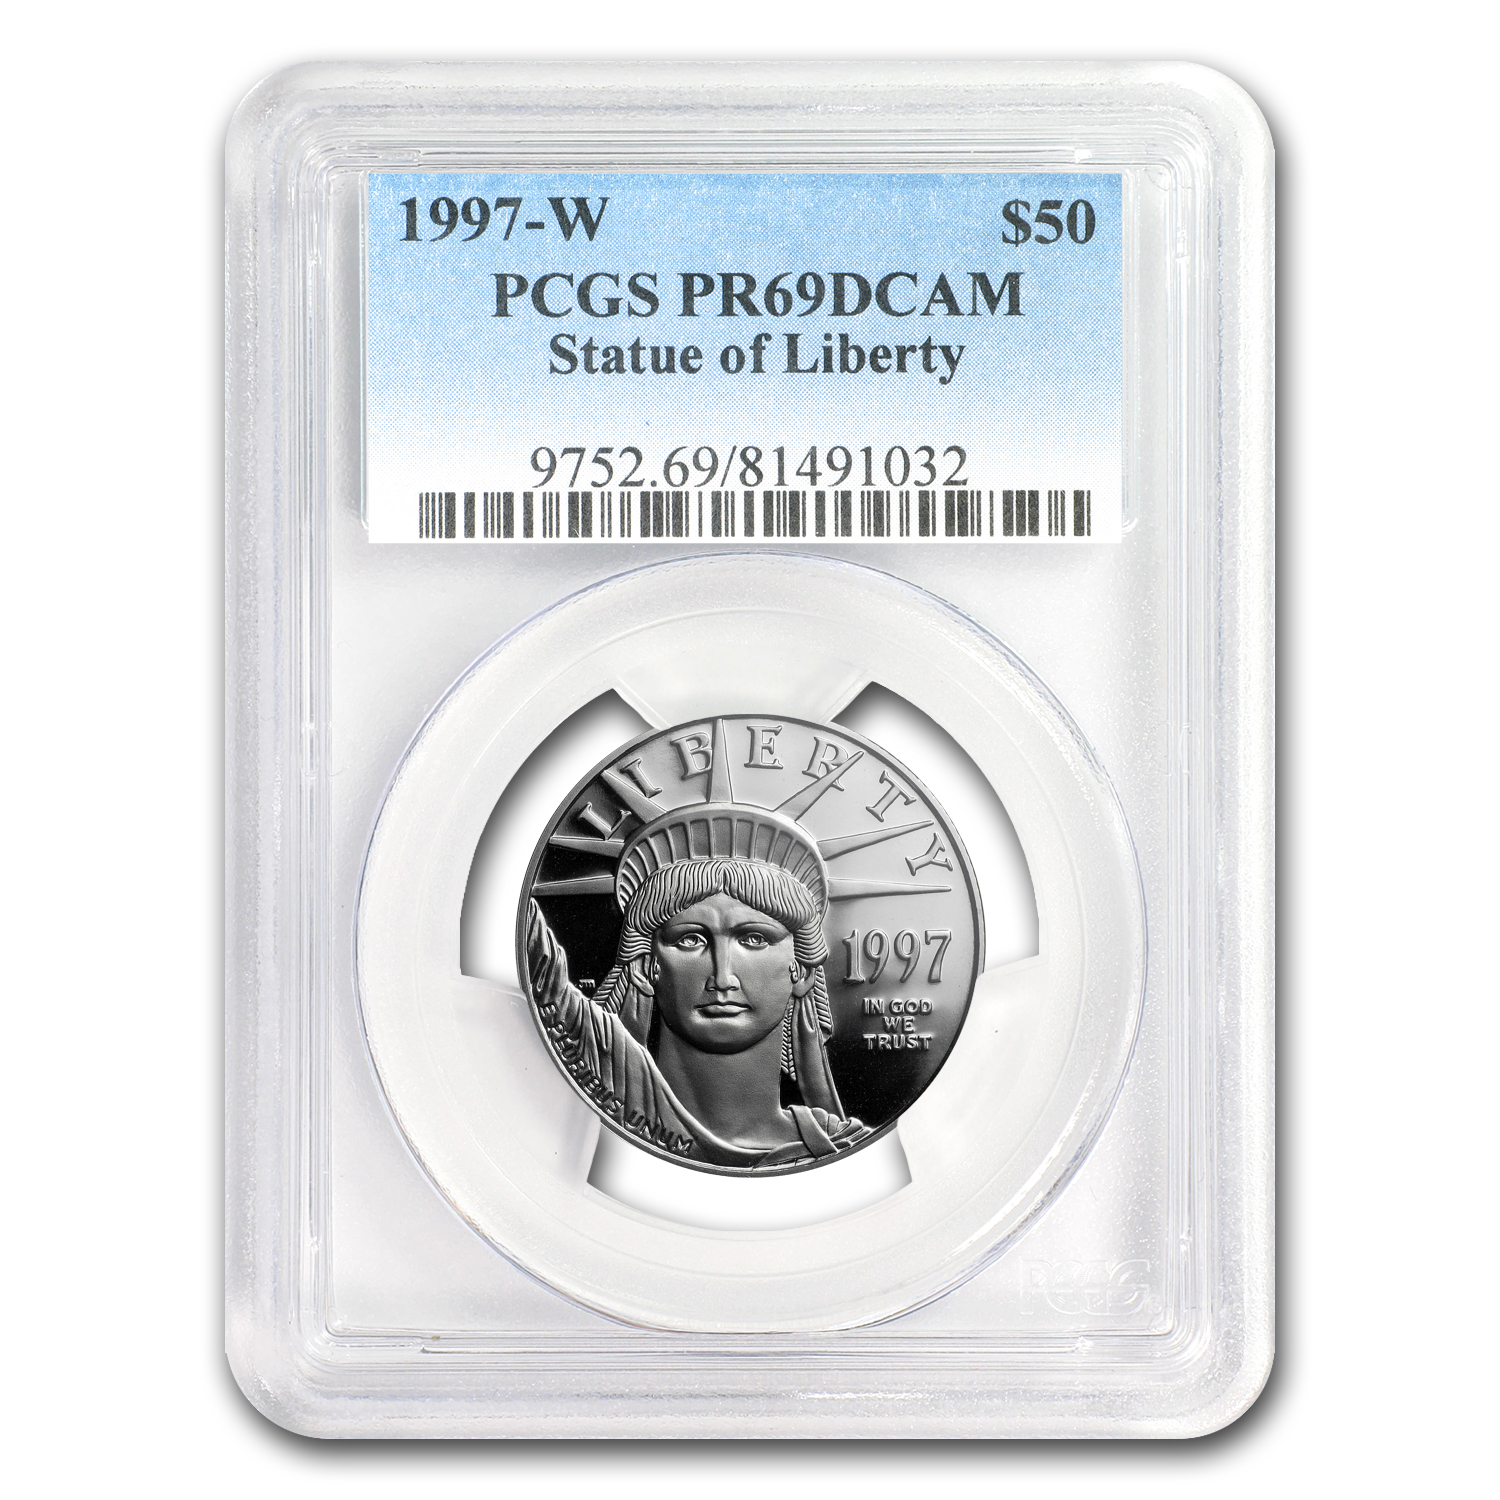 1997-W 1/2 oz Proof Platinum American Eagle PR-69 PCGS